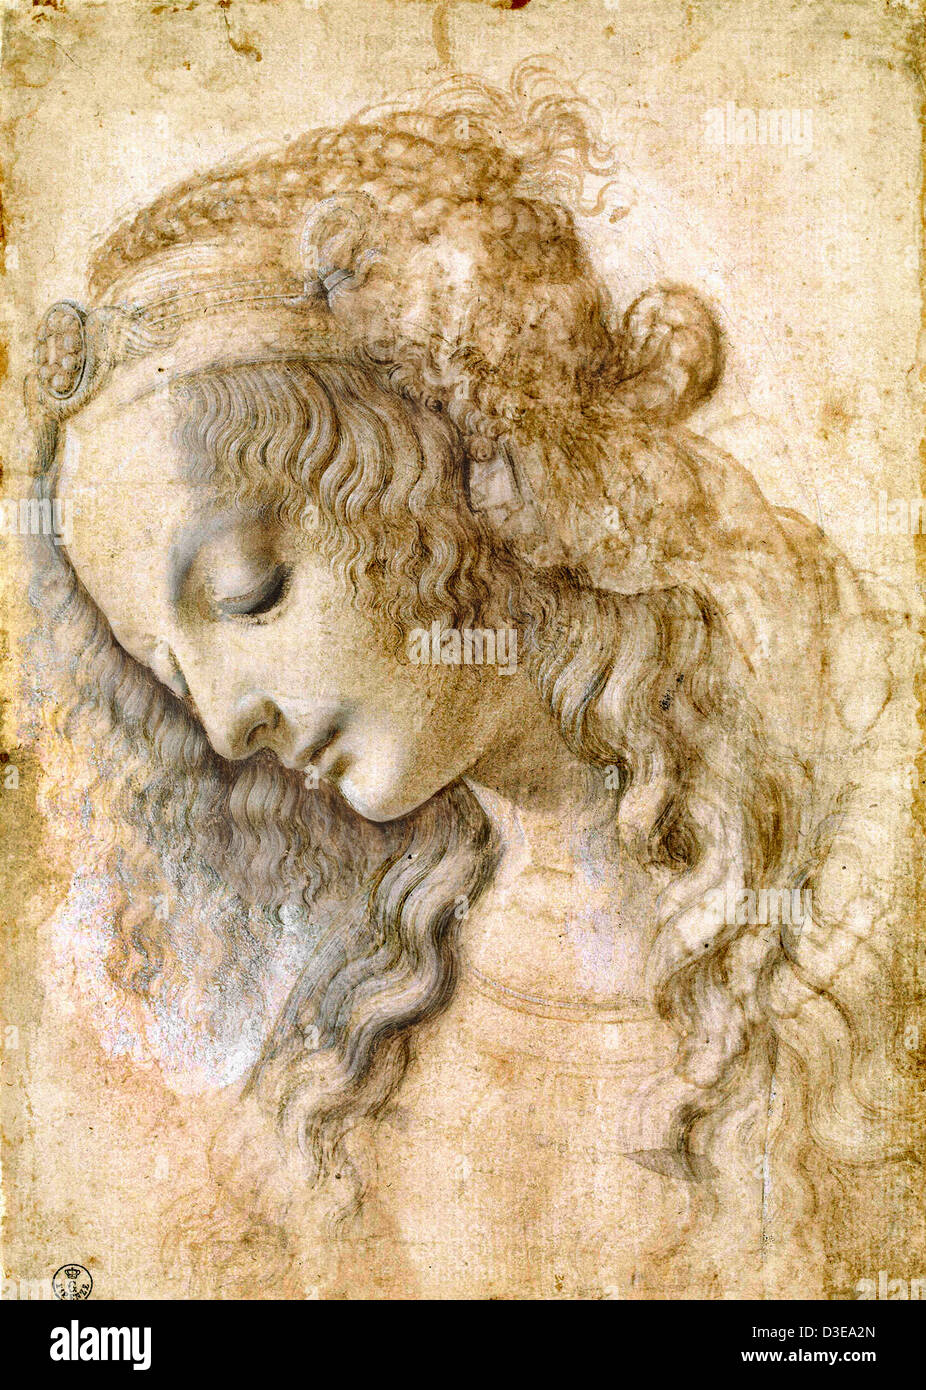 Leonardo da Vinci, Head of a Woman. 1470 Uffizi, Florence - Stock Image